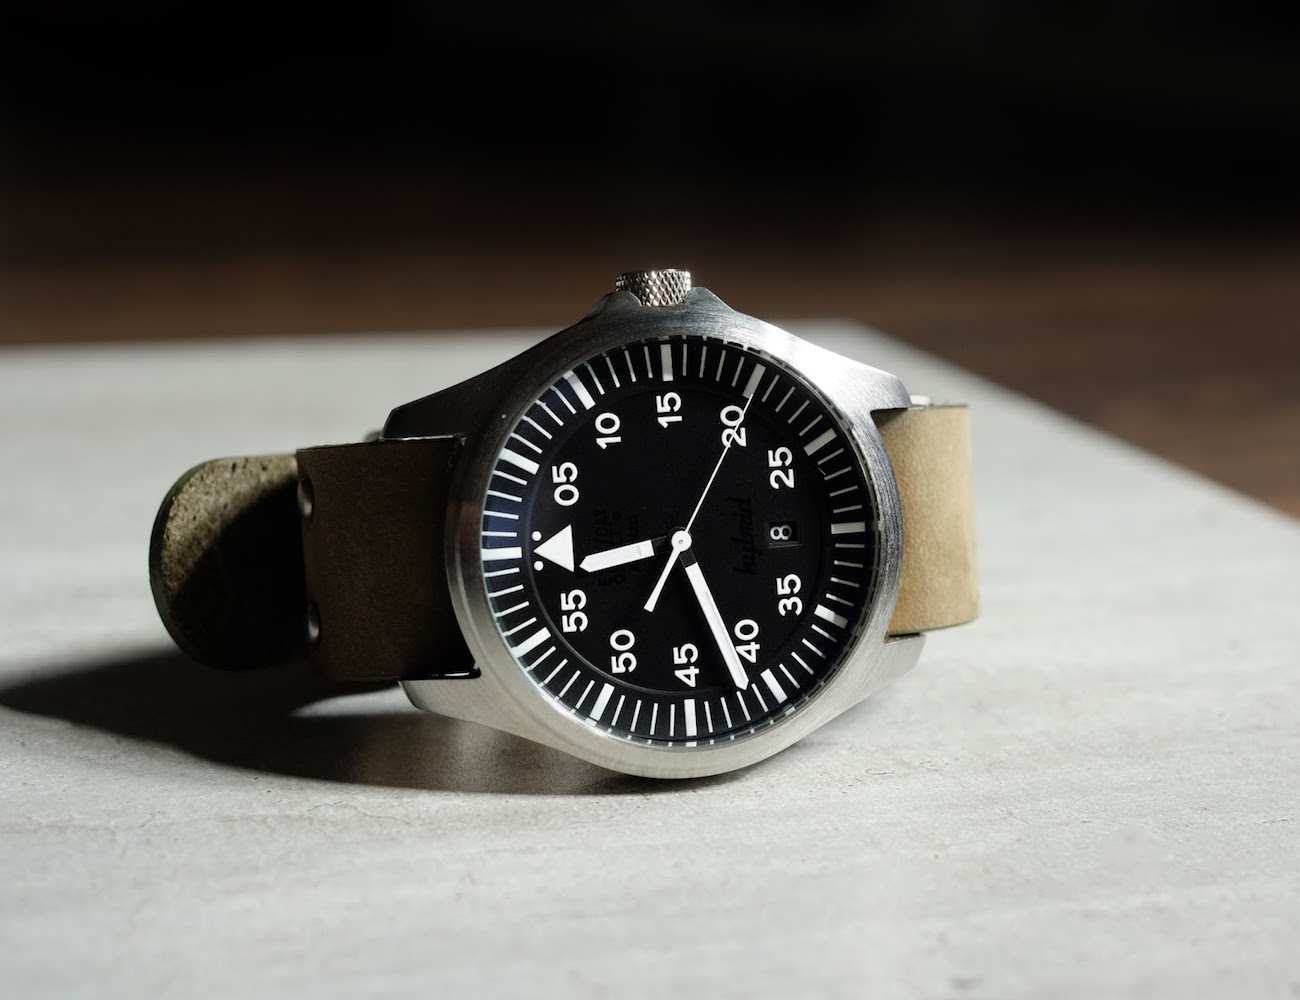 EO-2 – The Pilot Watch Powered By You